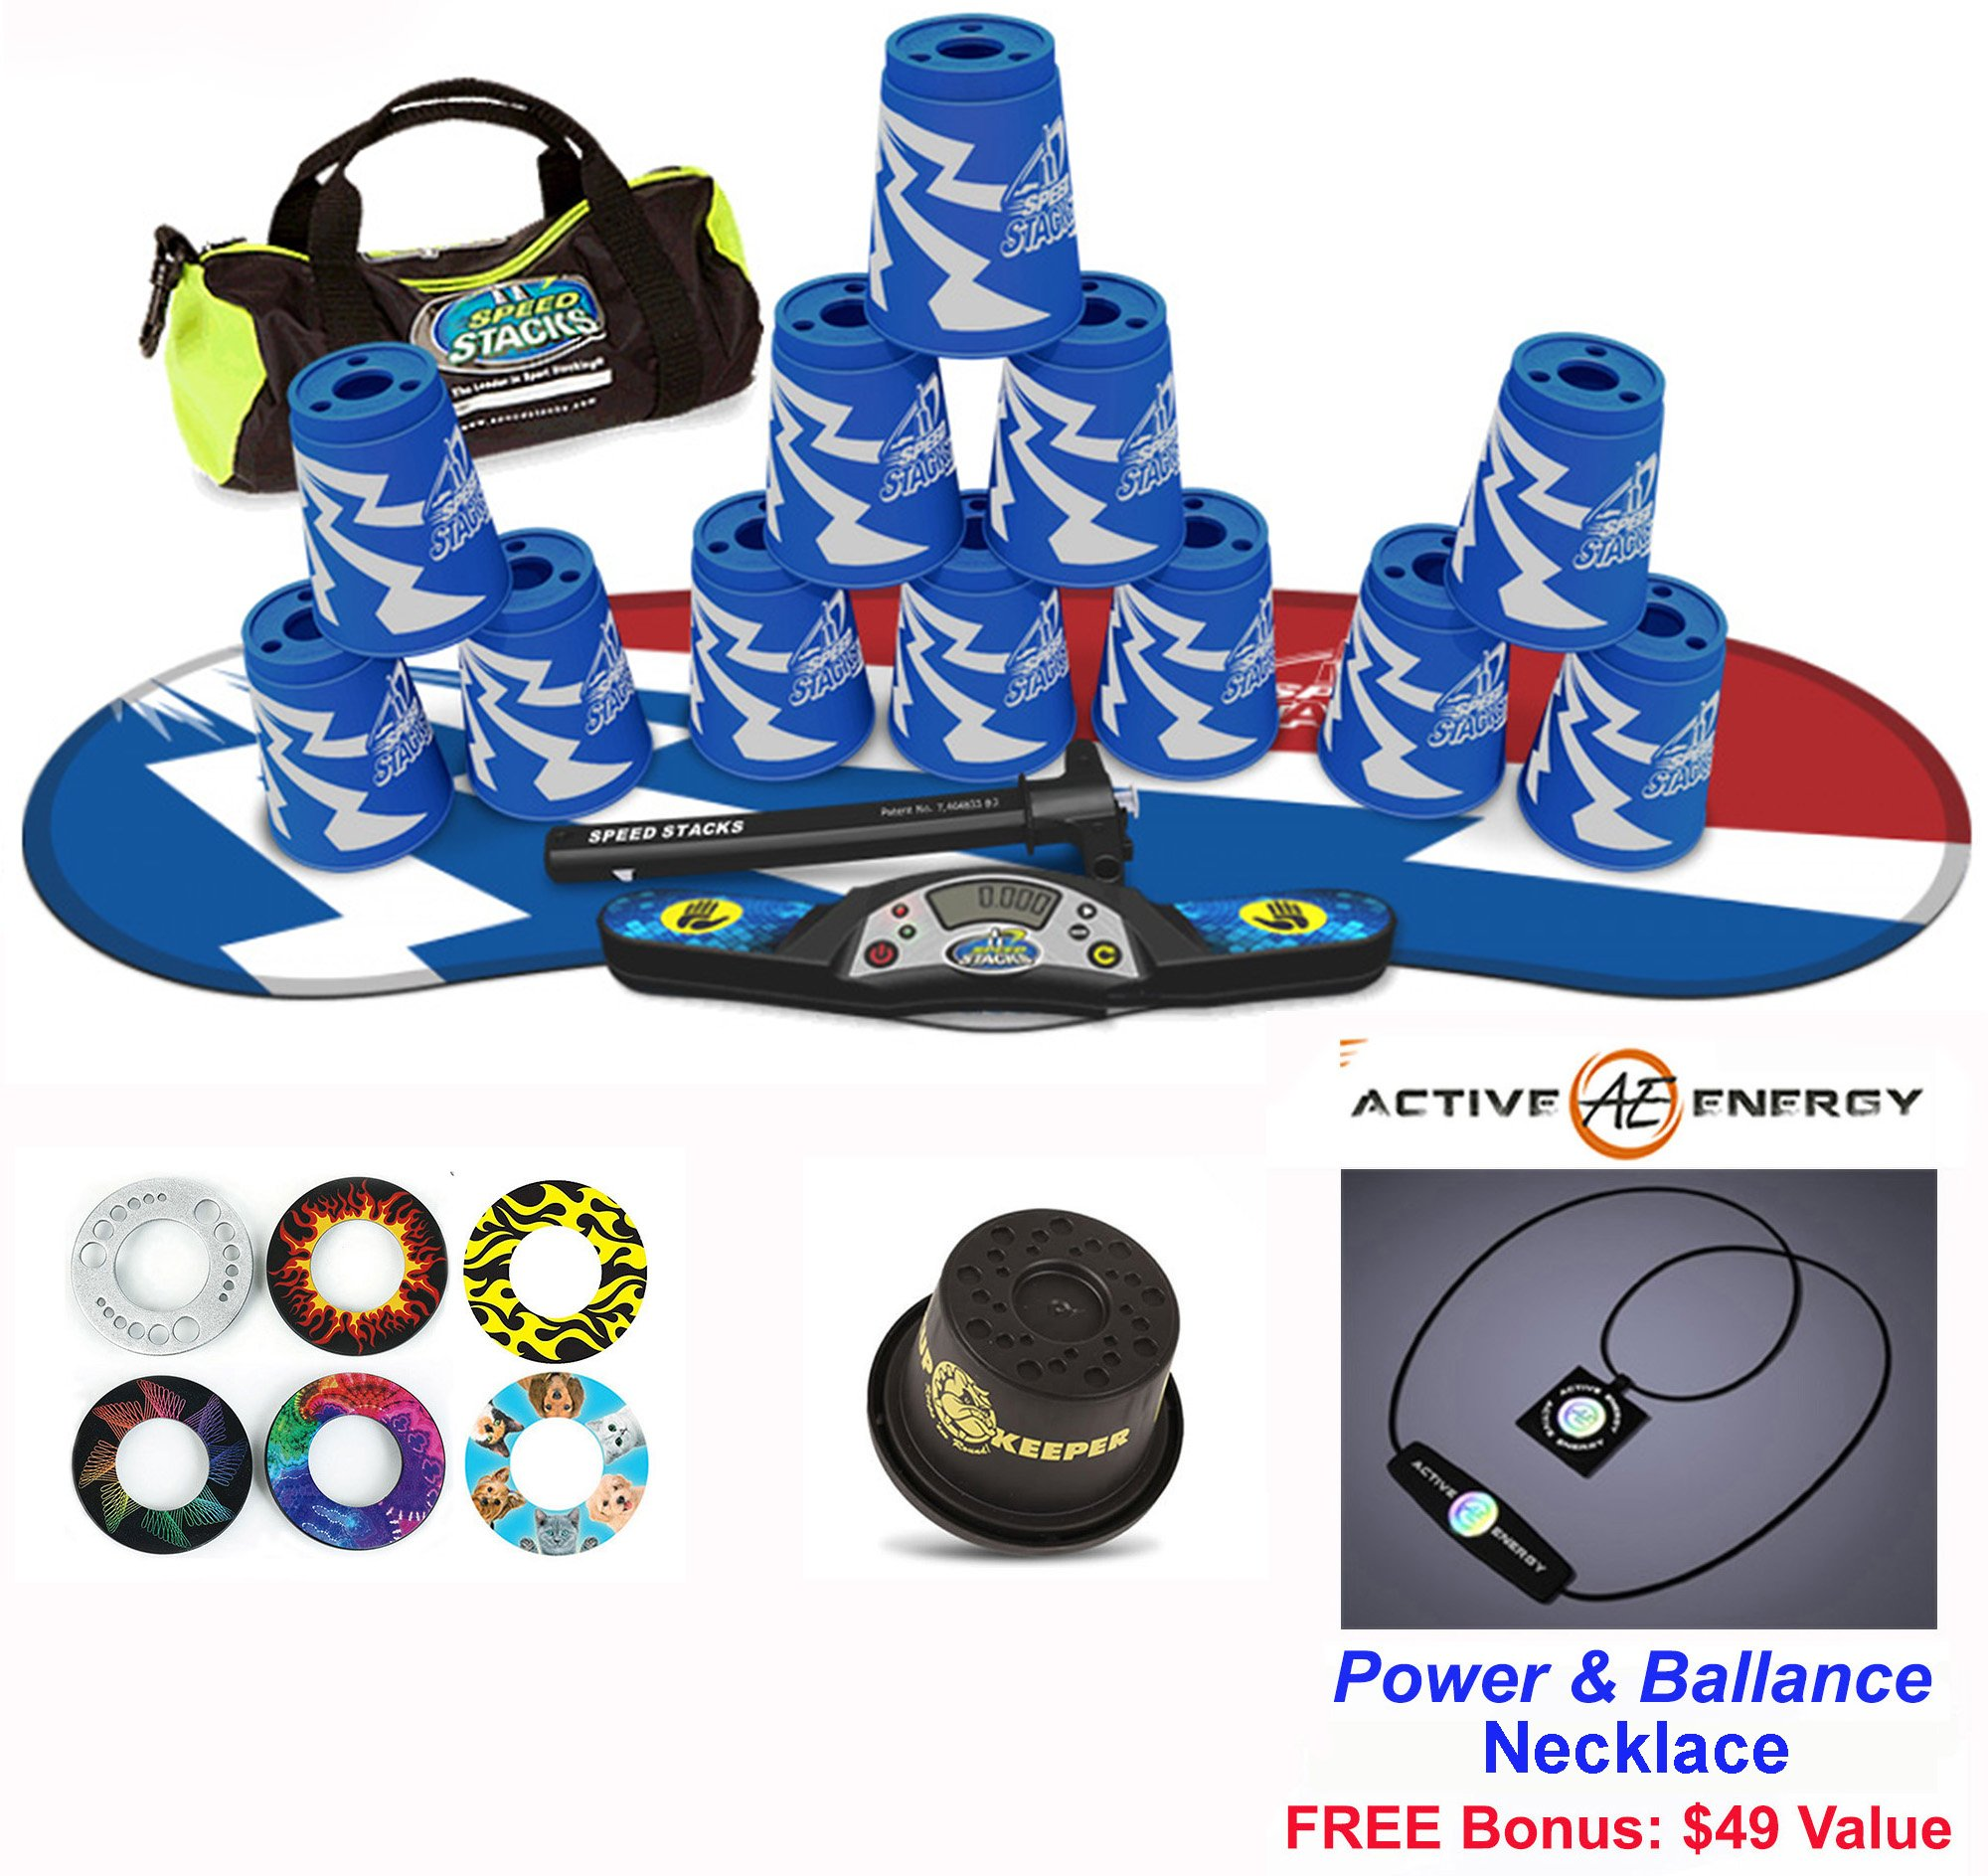 Speed Stacks The Works Combo Set: 12 Atomic Punch 4'' Cups & Gen 3 Mat, Cup Keeper, Stem, G4 Pro Timer, Gear Bag + Active Energy Necklace